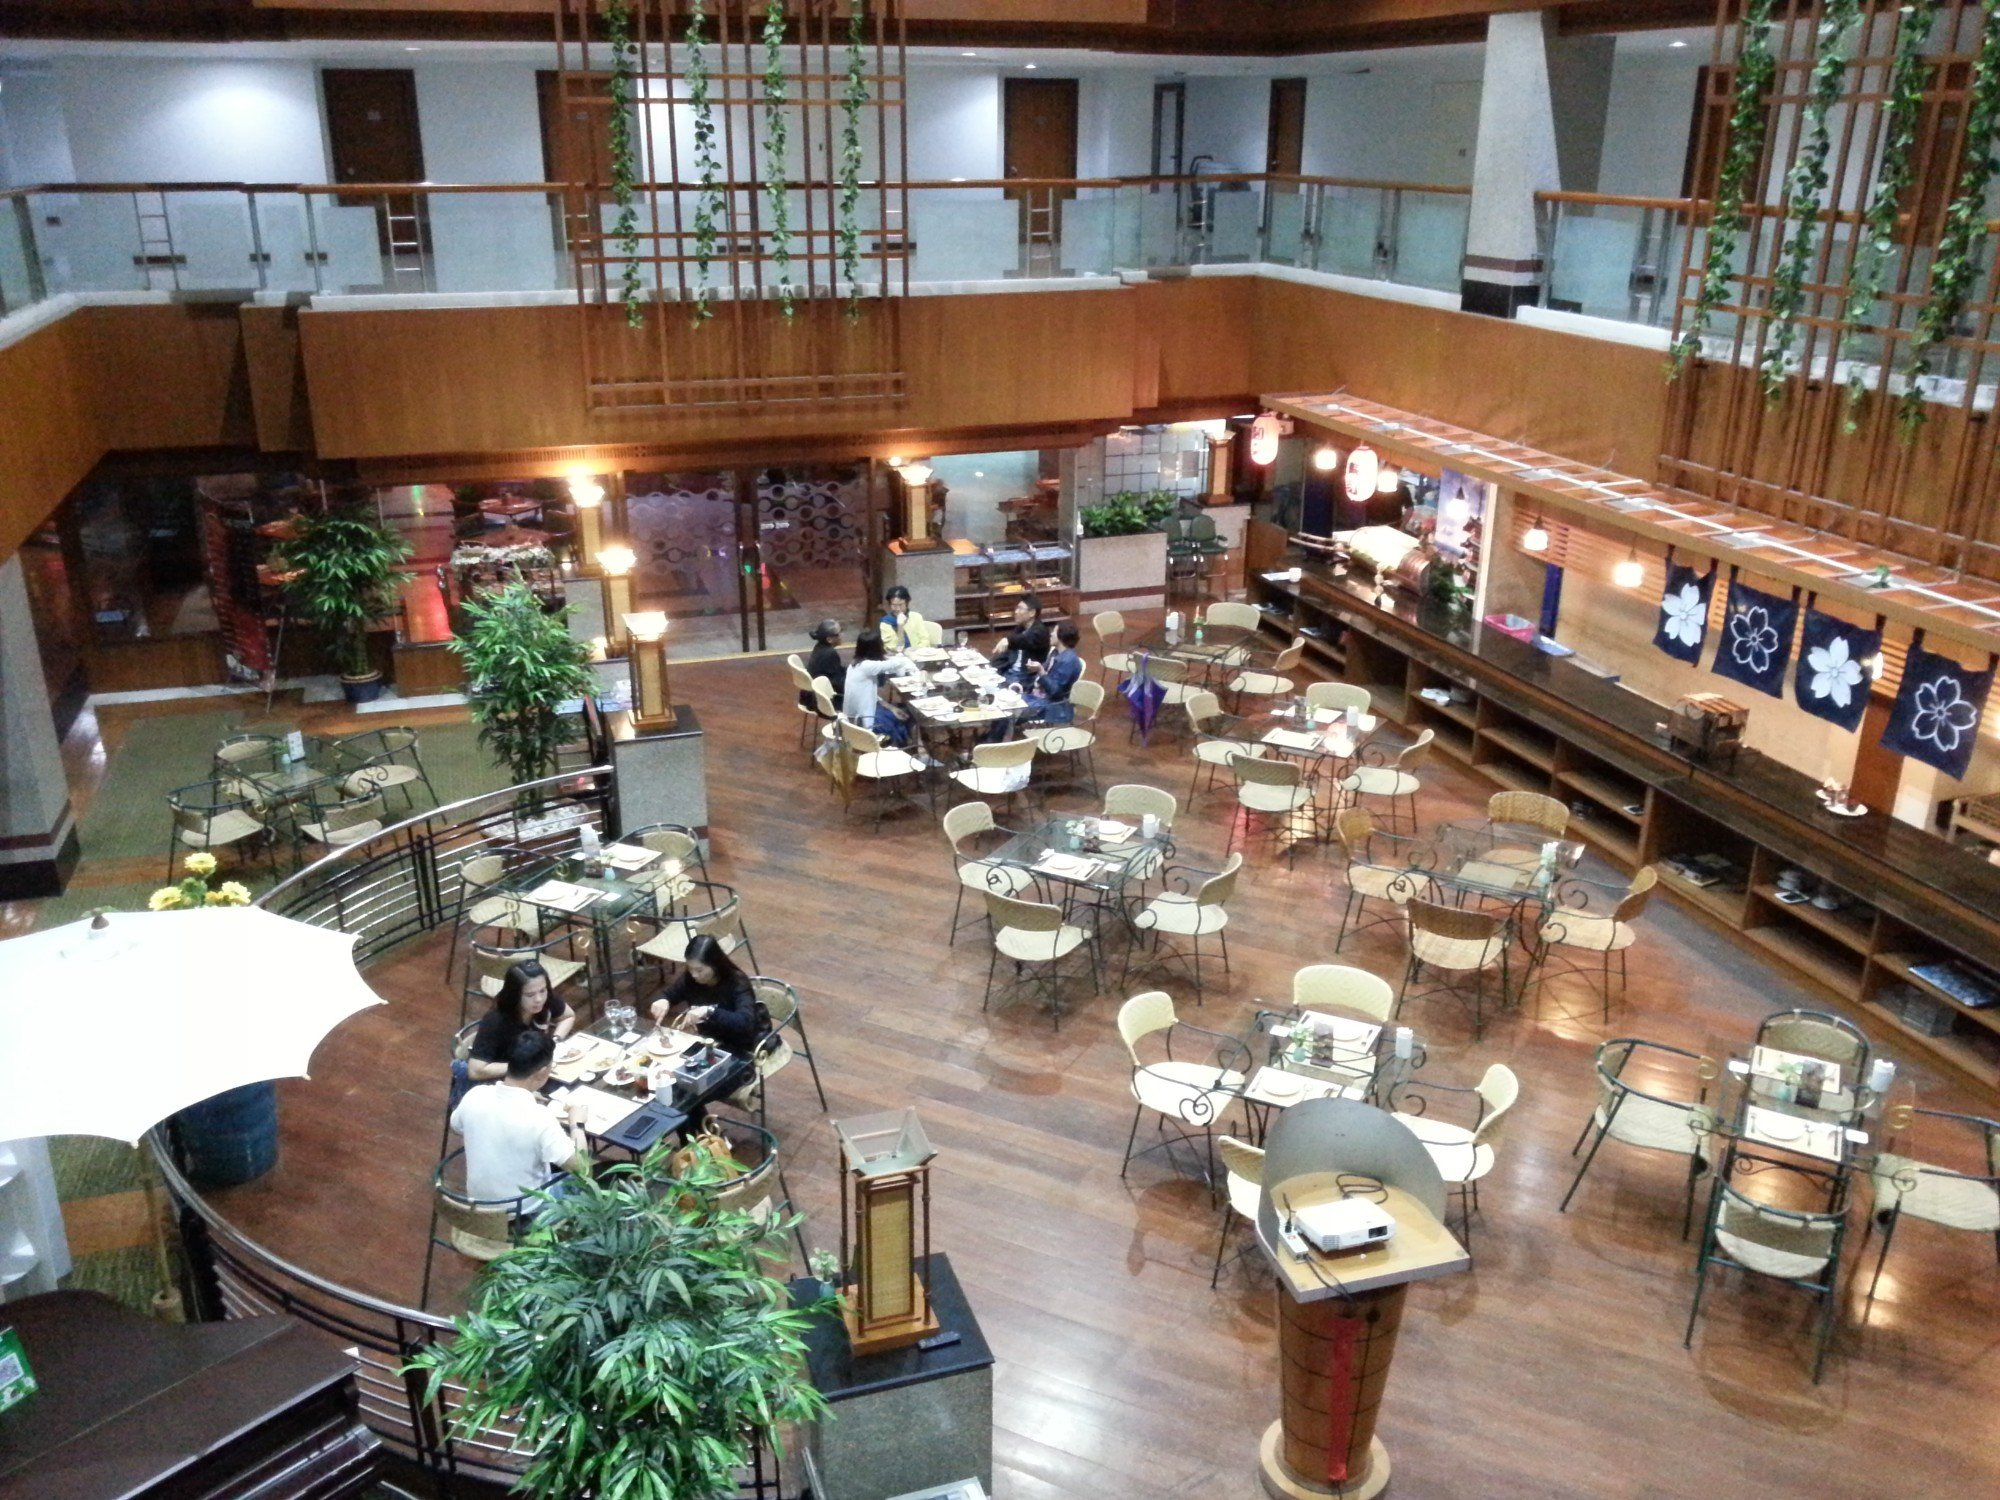 Restaurant area at the Friday Hotel